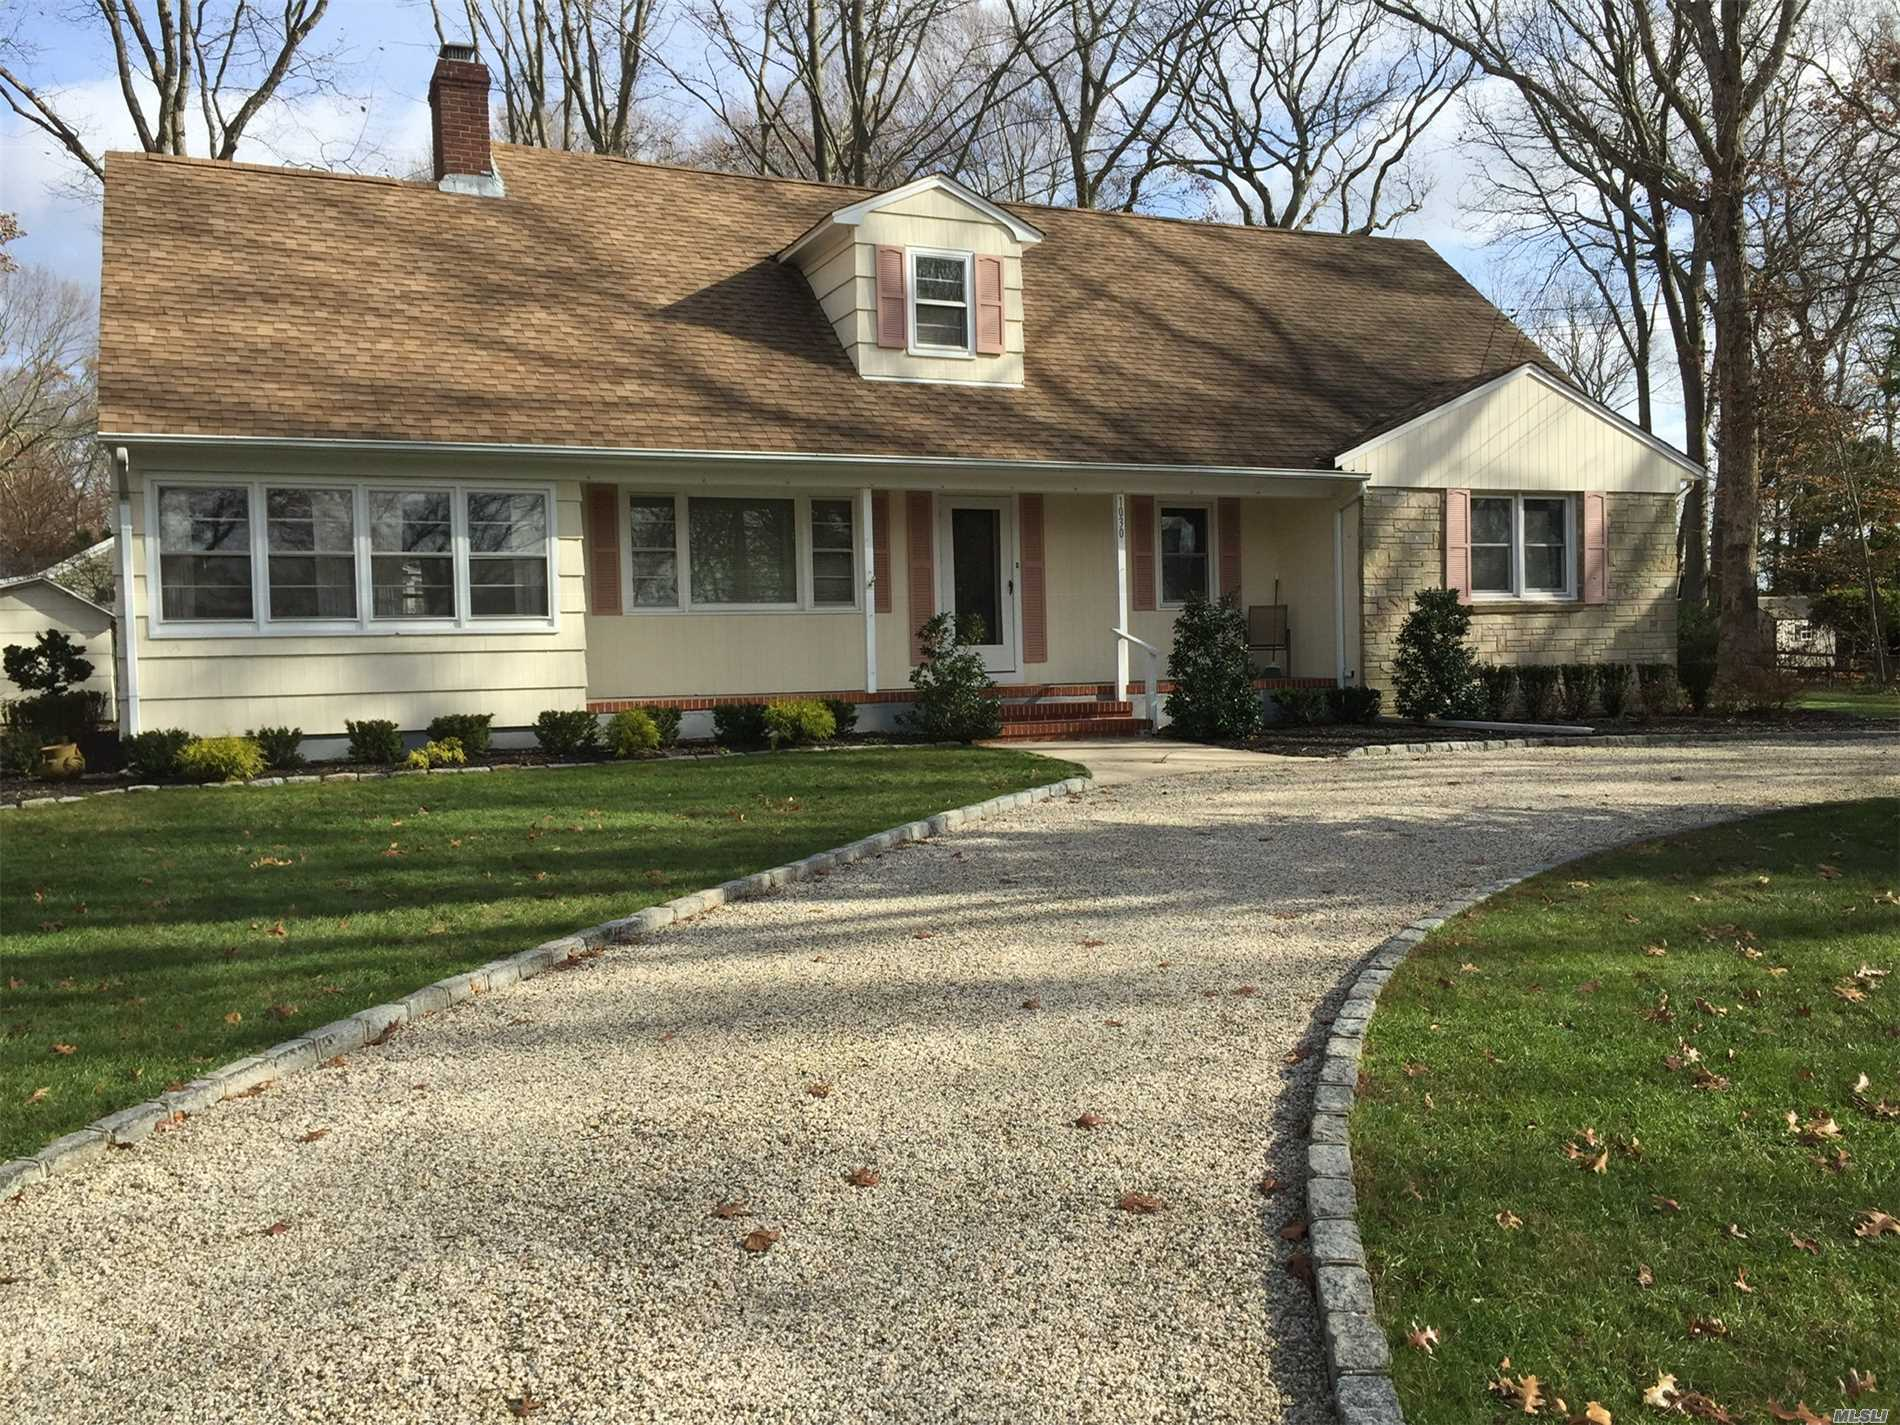 Mint 5 Bedroom Colonial With Lr/Fpl, Eik, Dining Area, Sun Filled Family Room, 2 Baths, Full Basement, New Gas Heat Situated In Desireable Private Community With Water Rights. Good Value @ $599, 000.00